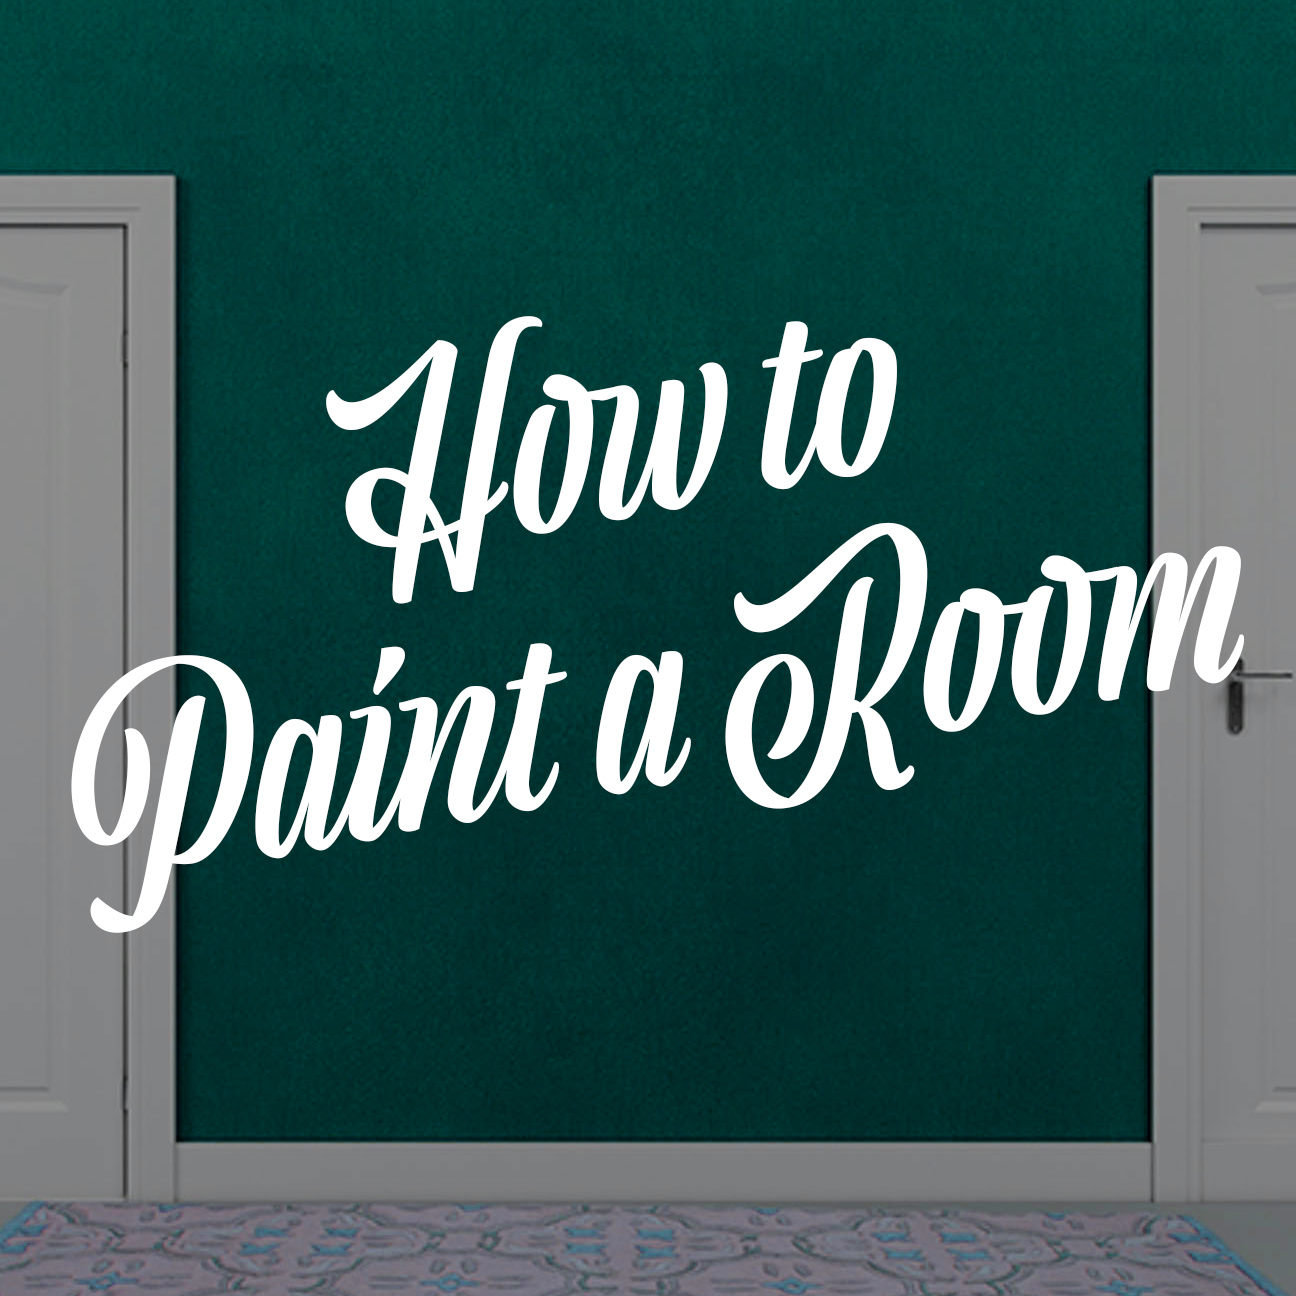 How to paint a room banner